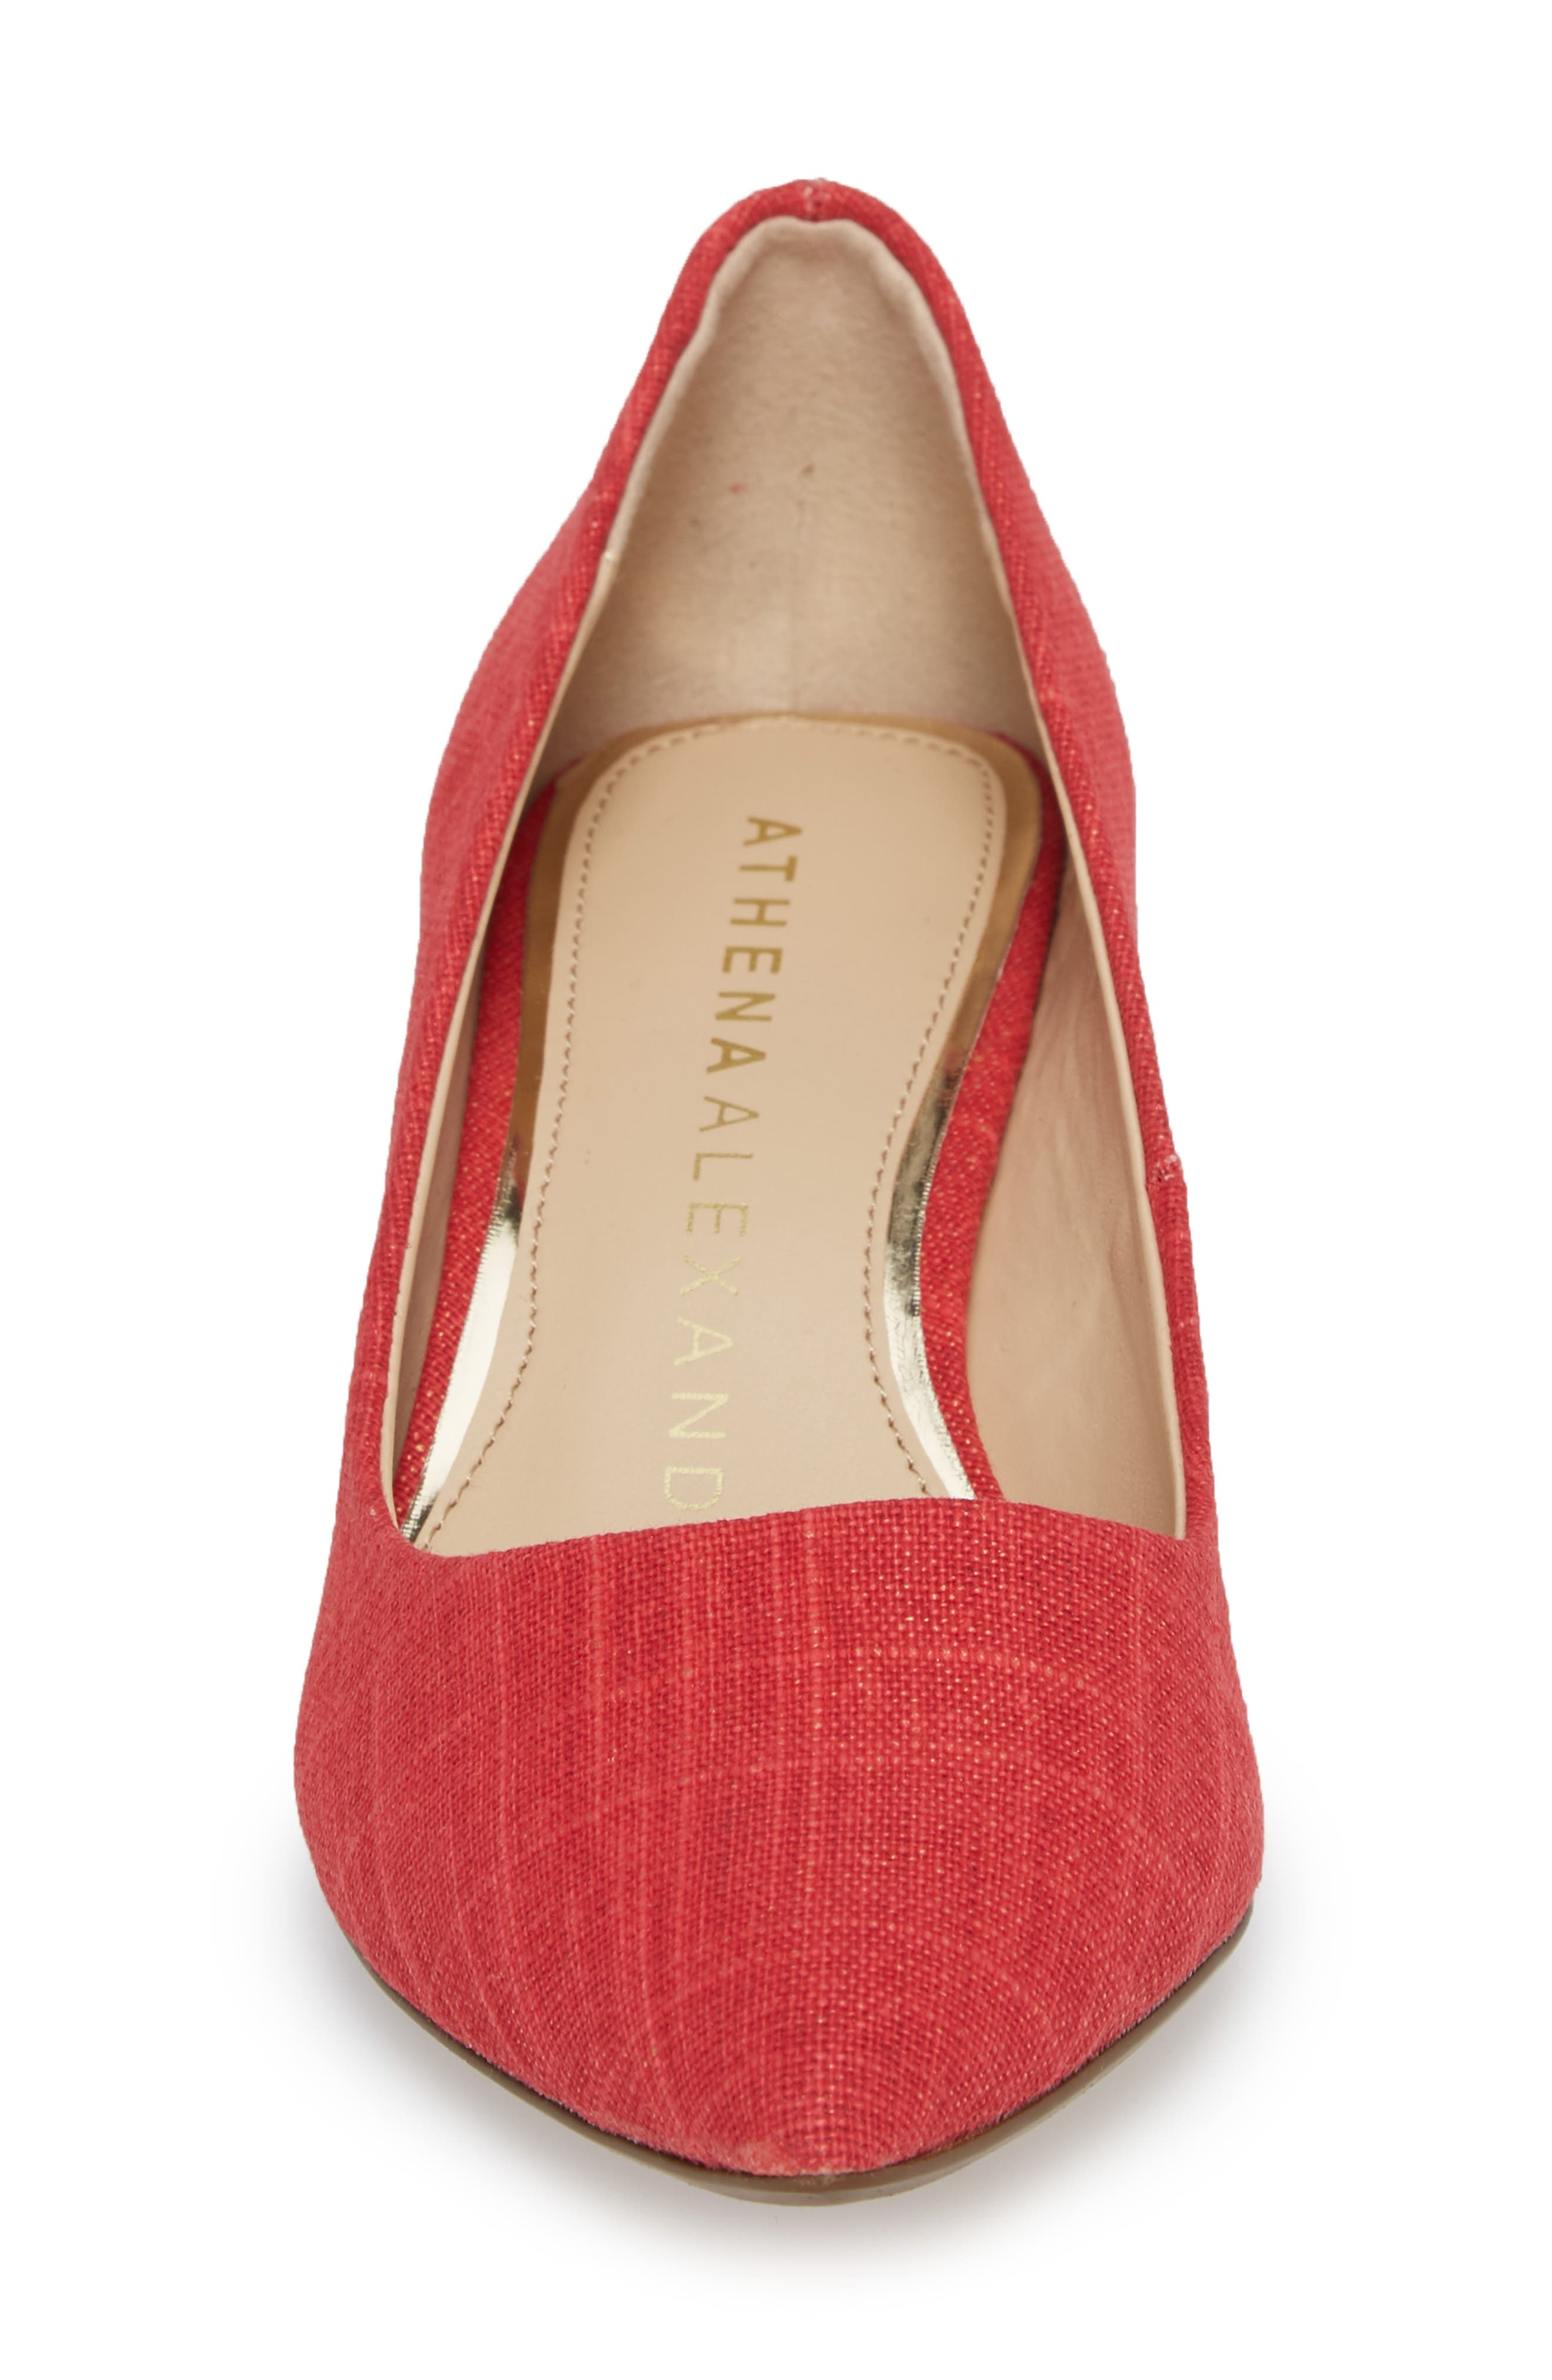 Target Kitten Heel Pump,                             Alternate thumbnail 4, color,                             Red Fabric